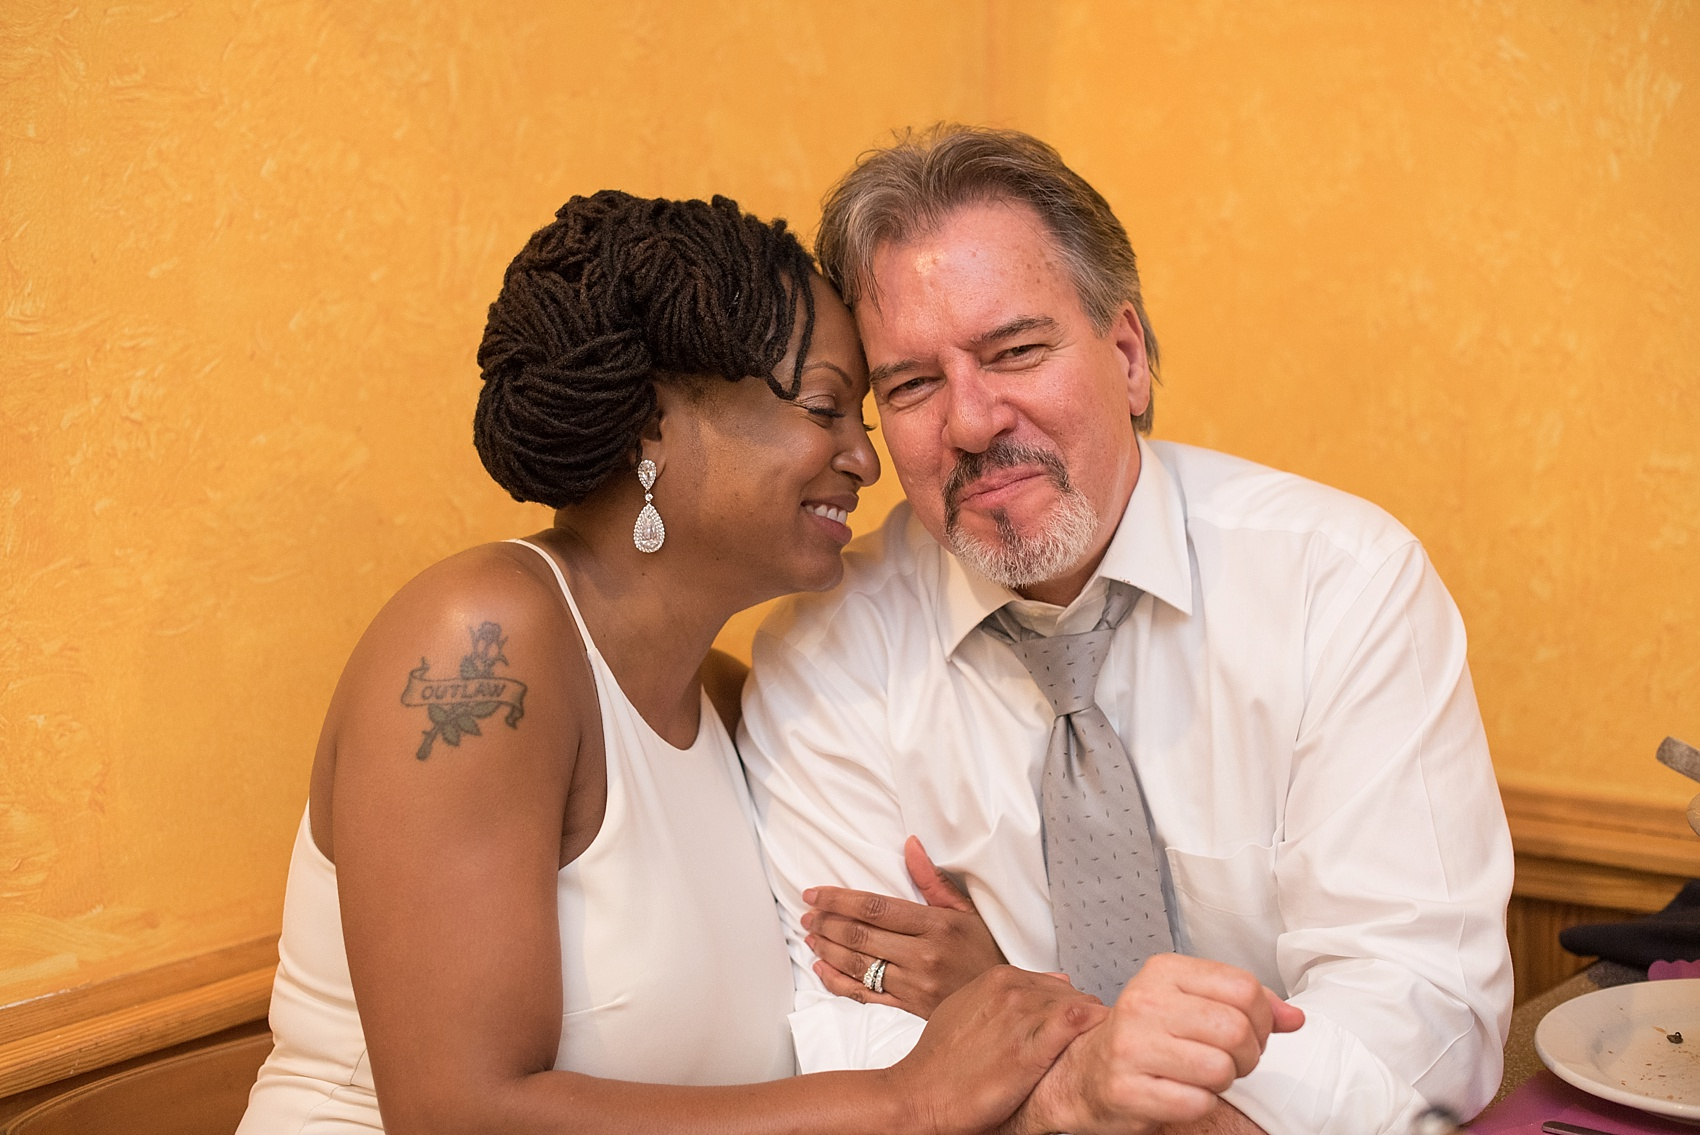 Downtown Raleigh, NC mixed race wedding. Photos by Mikkel Paige Photography. Photos of the bride and groom.